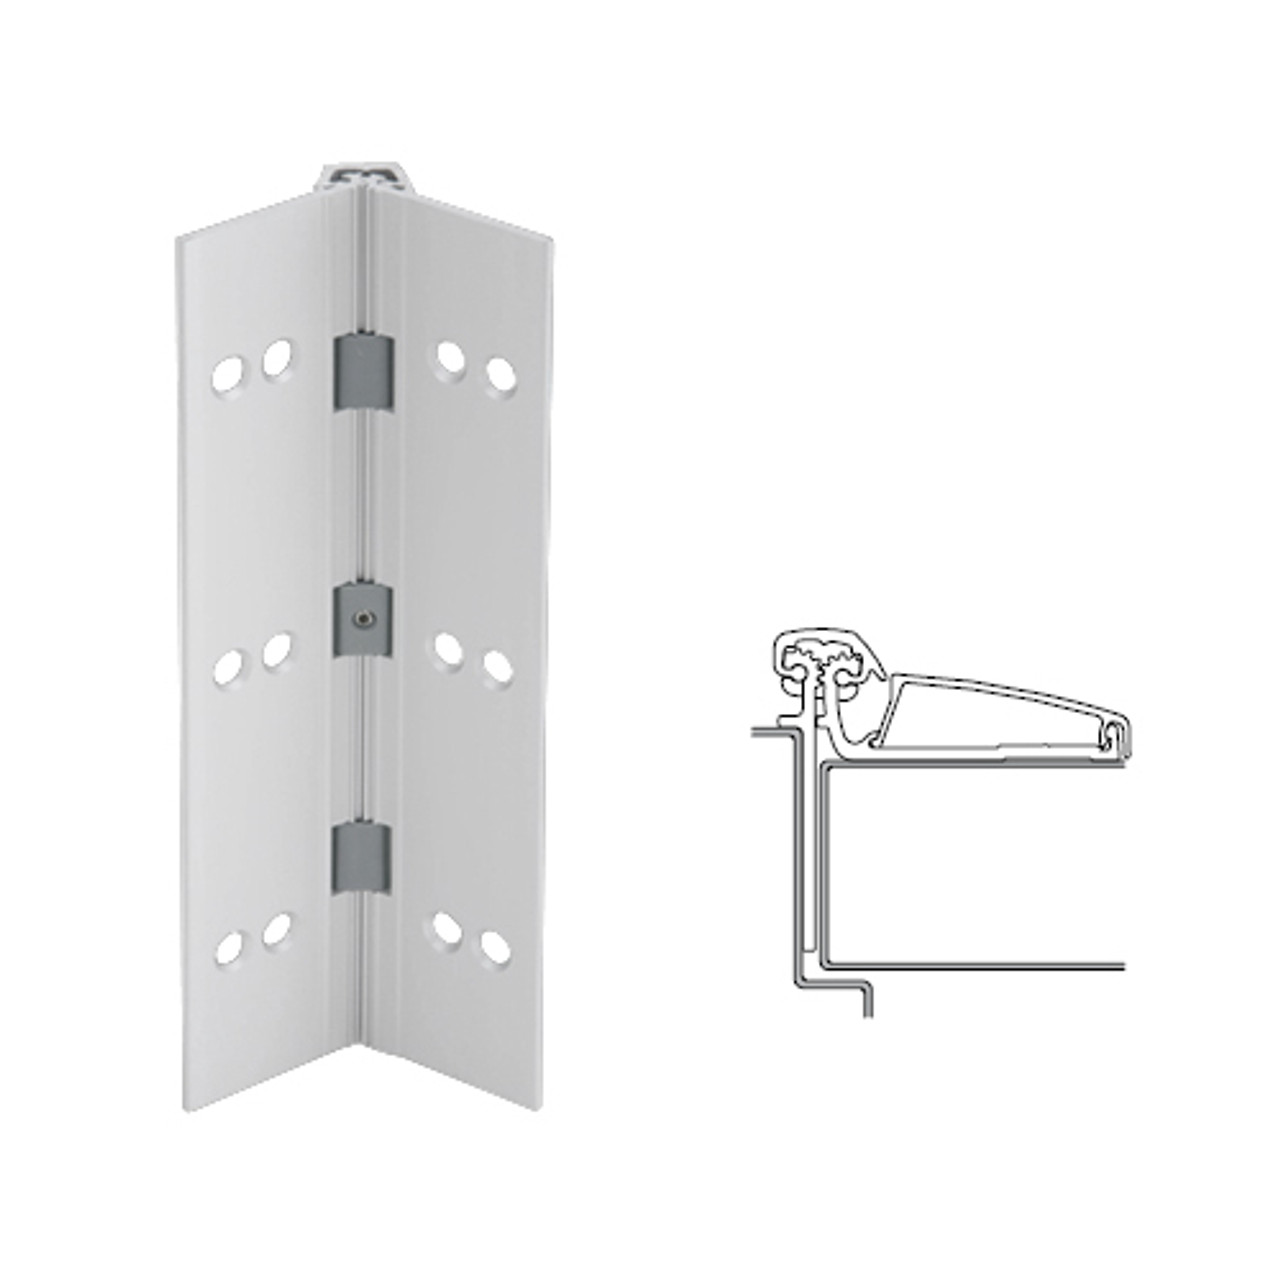 046XY-US28-120-SECWDWD IVES Adjustable Half Surface Continuous Geared Hinges with Security Screws - Hex Pin Drive in Satin Aluminum